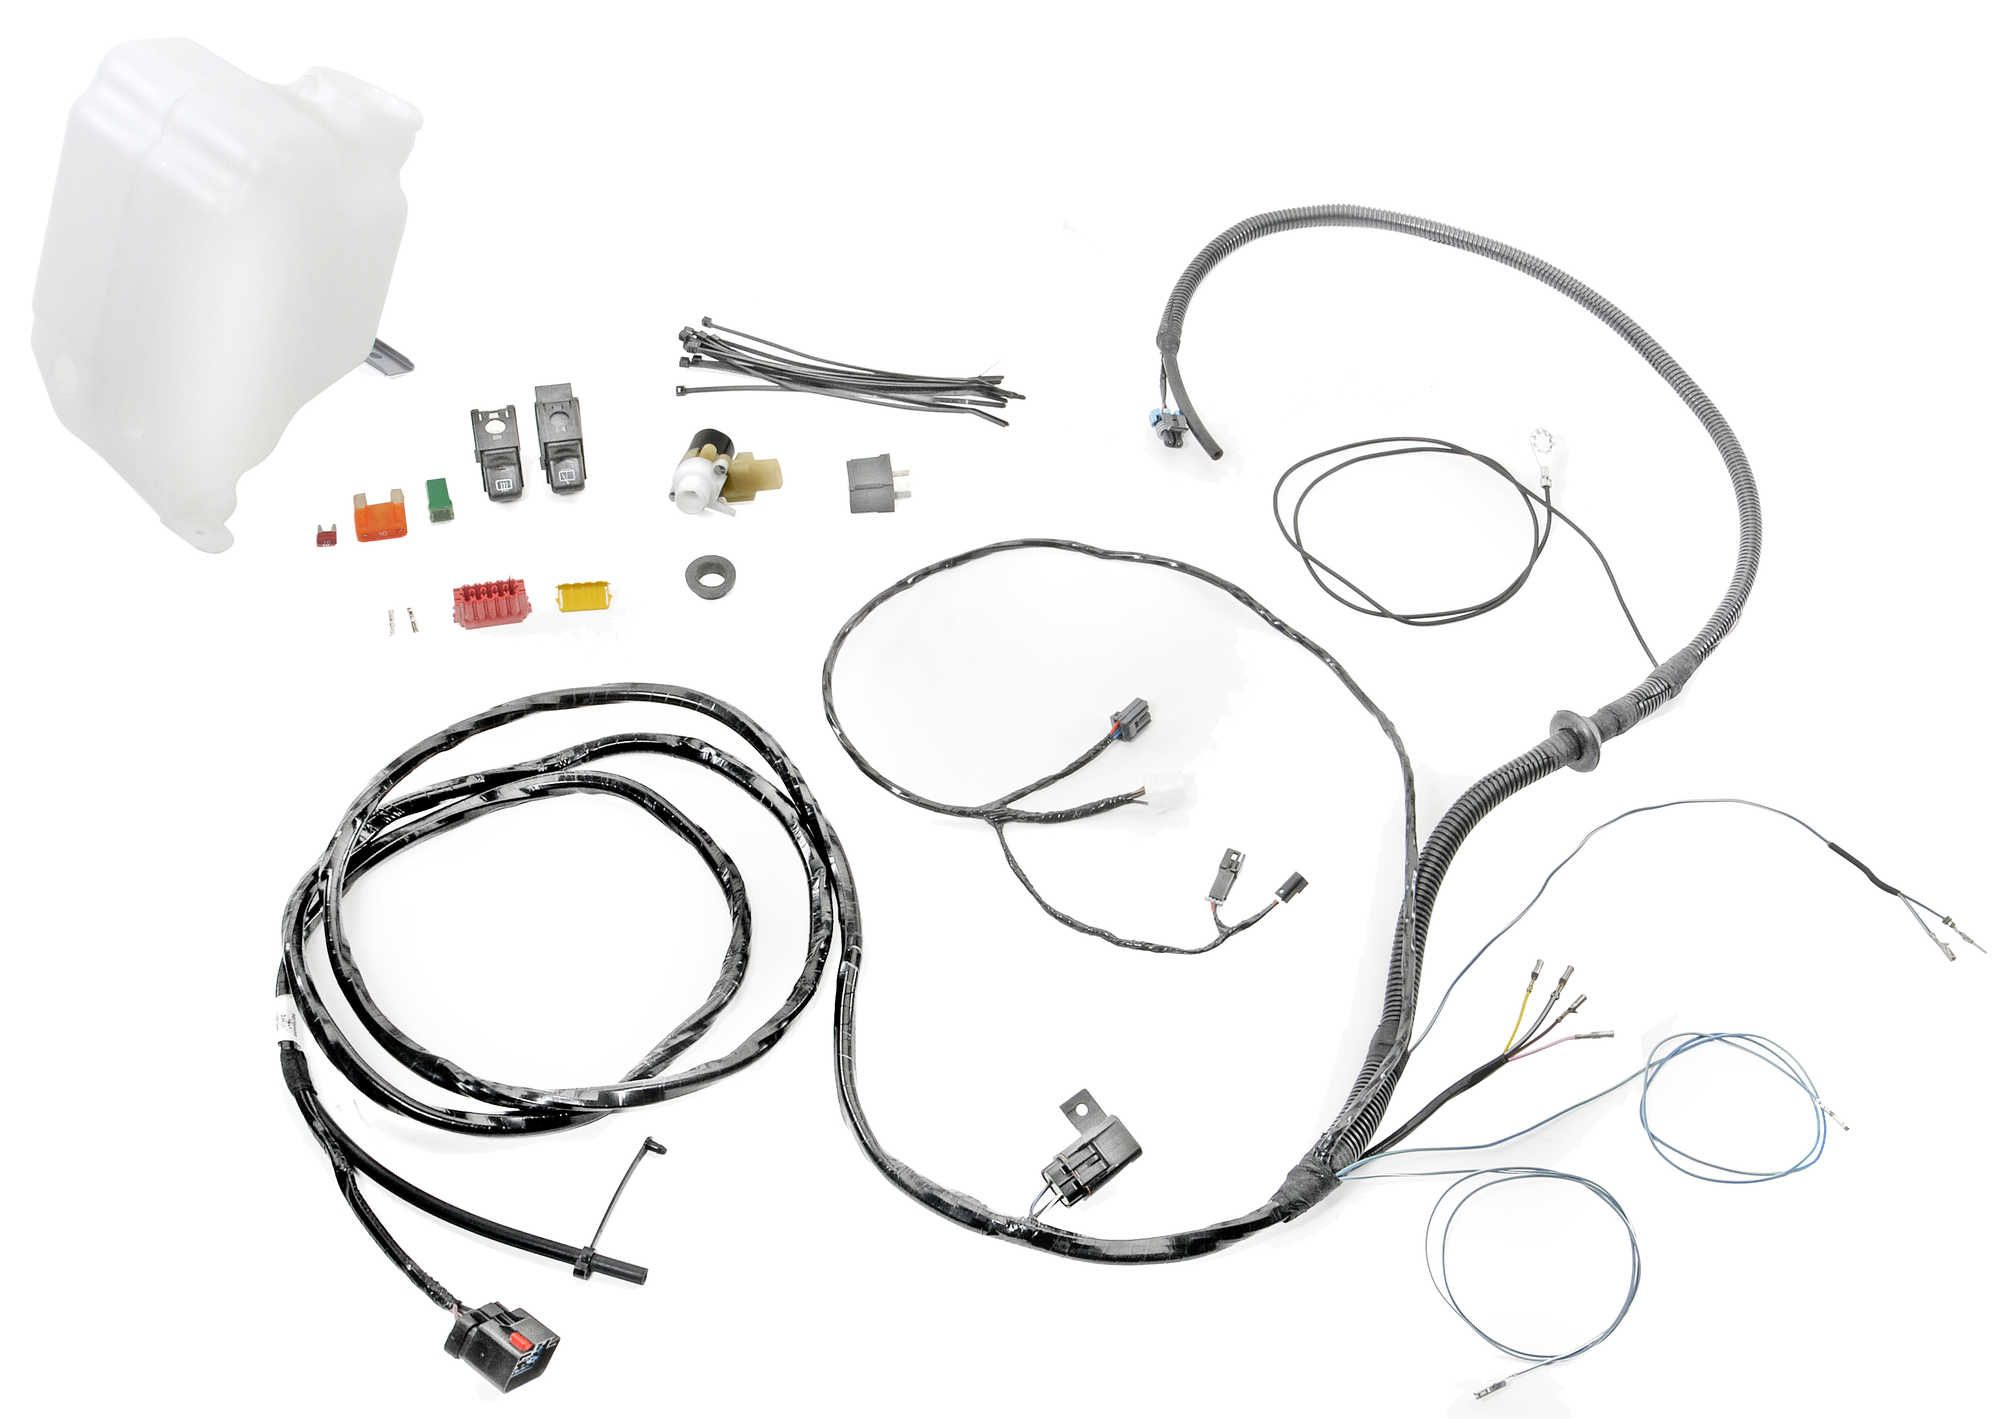 a93ea625882d9d6f92f085717ba425ba this brand new oe mopar� hard top wiring kit includes everything  at creativeand.co